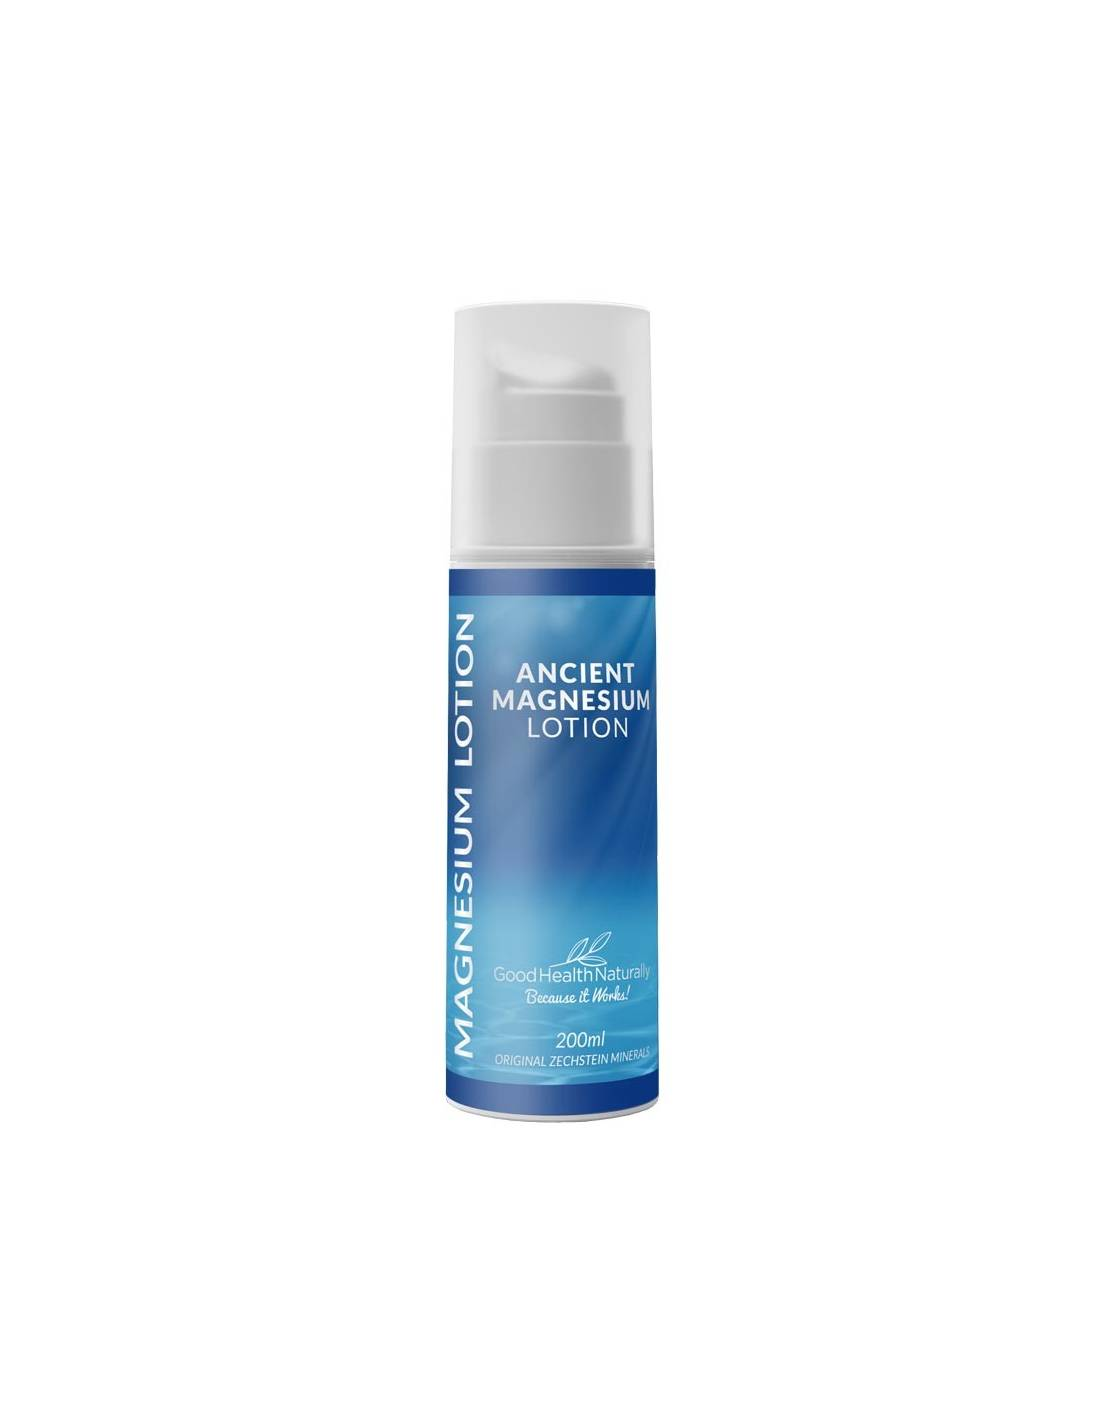 Ancient Magnesium Lotion 200ml